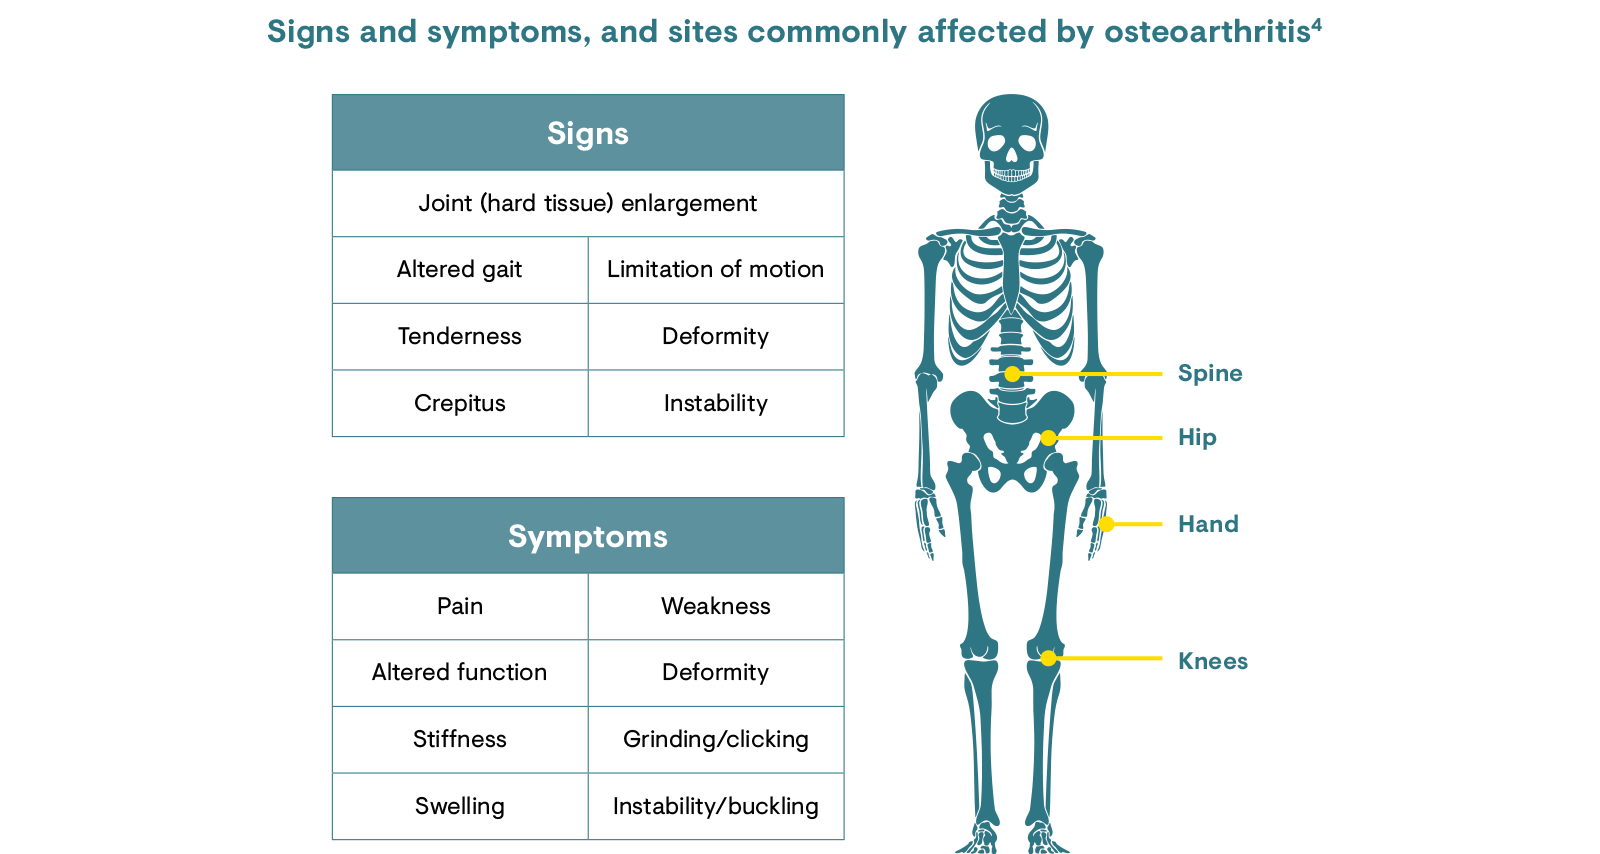 Signs and symptoms and sites commonly affected by osteoarthritis